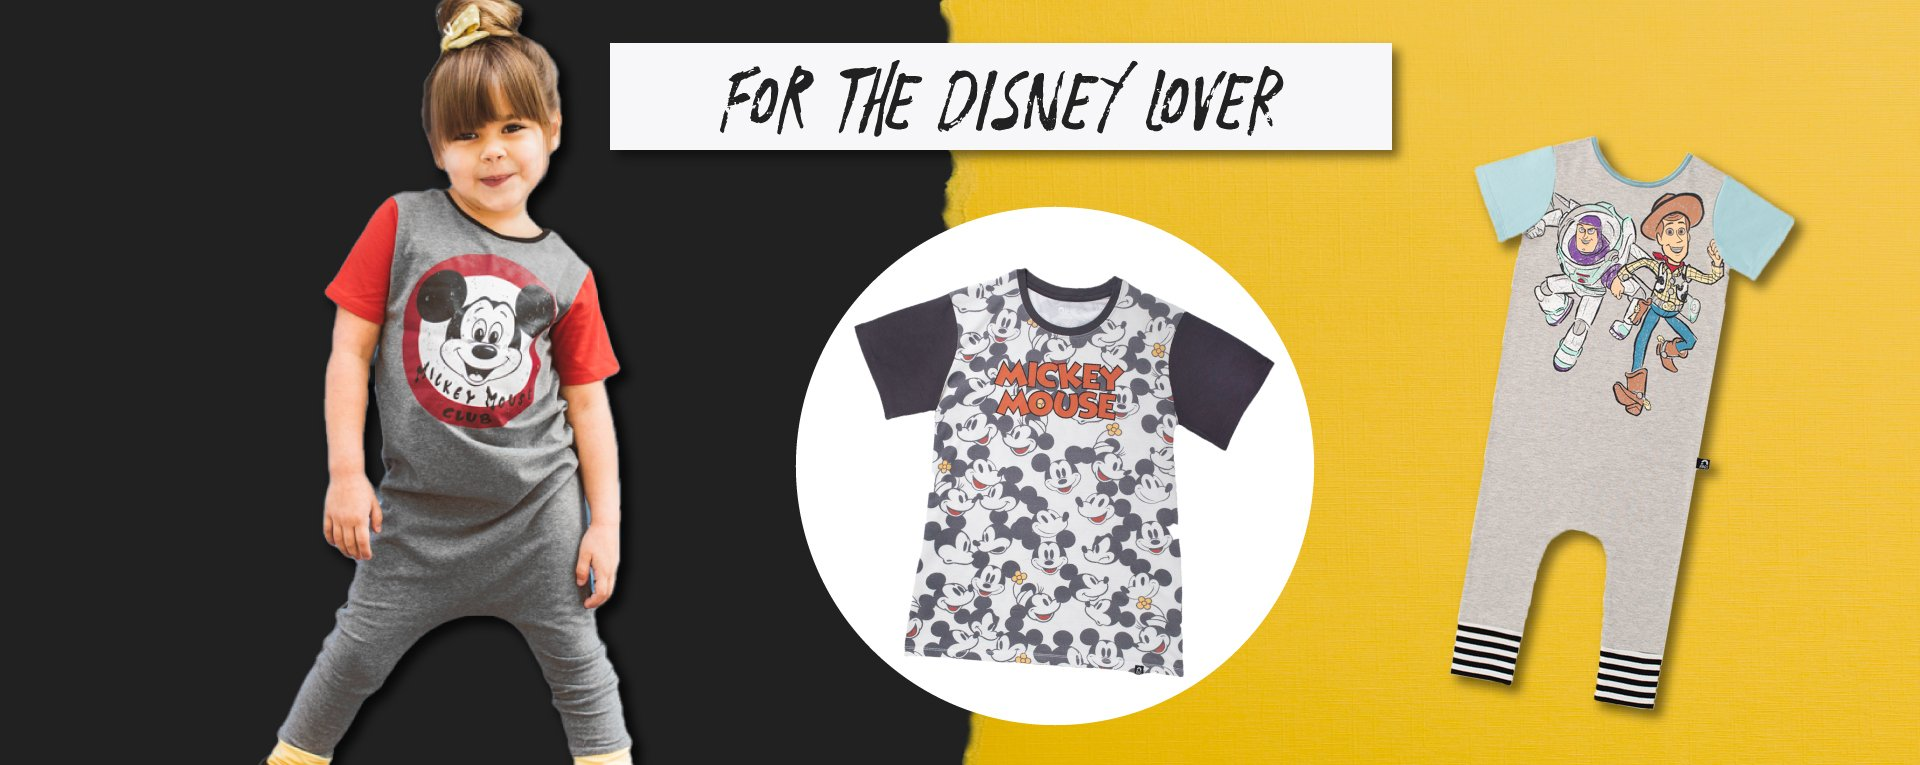 RAGS Gift guide for the Disney fan